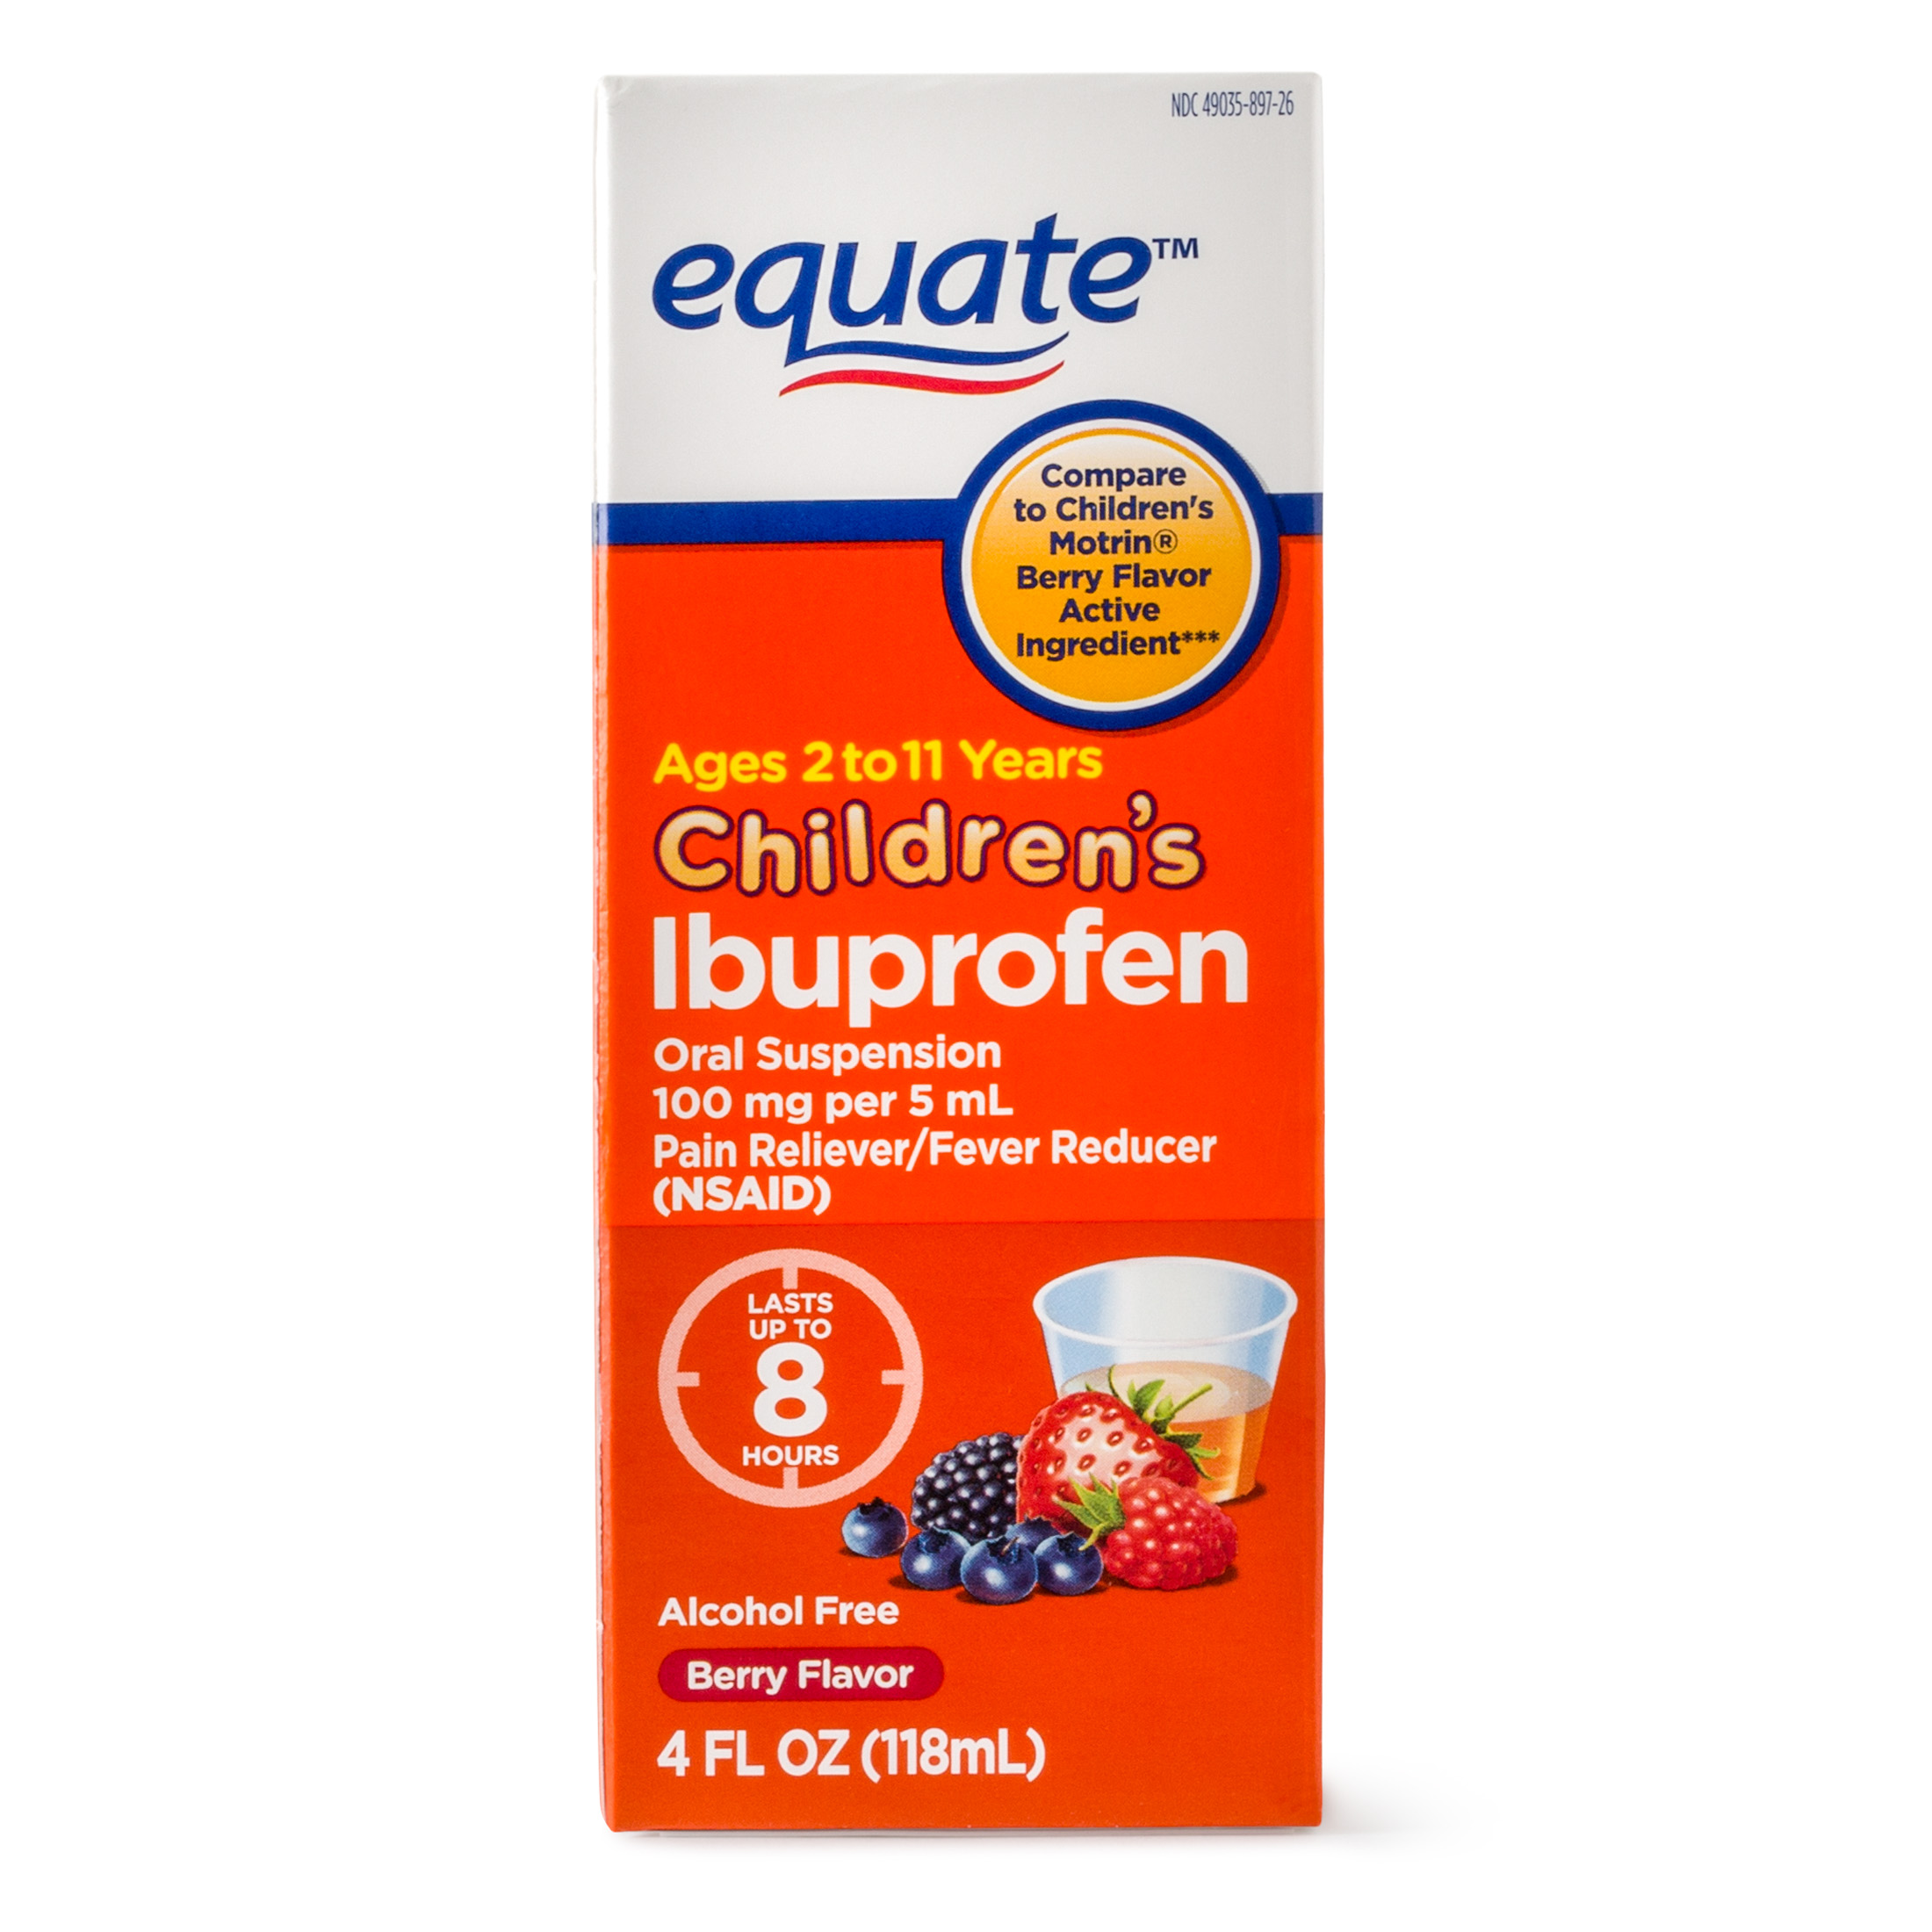 Equate Childrens Ibuprofen Berry Suspension, 100 mg, 4 Fl Oz